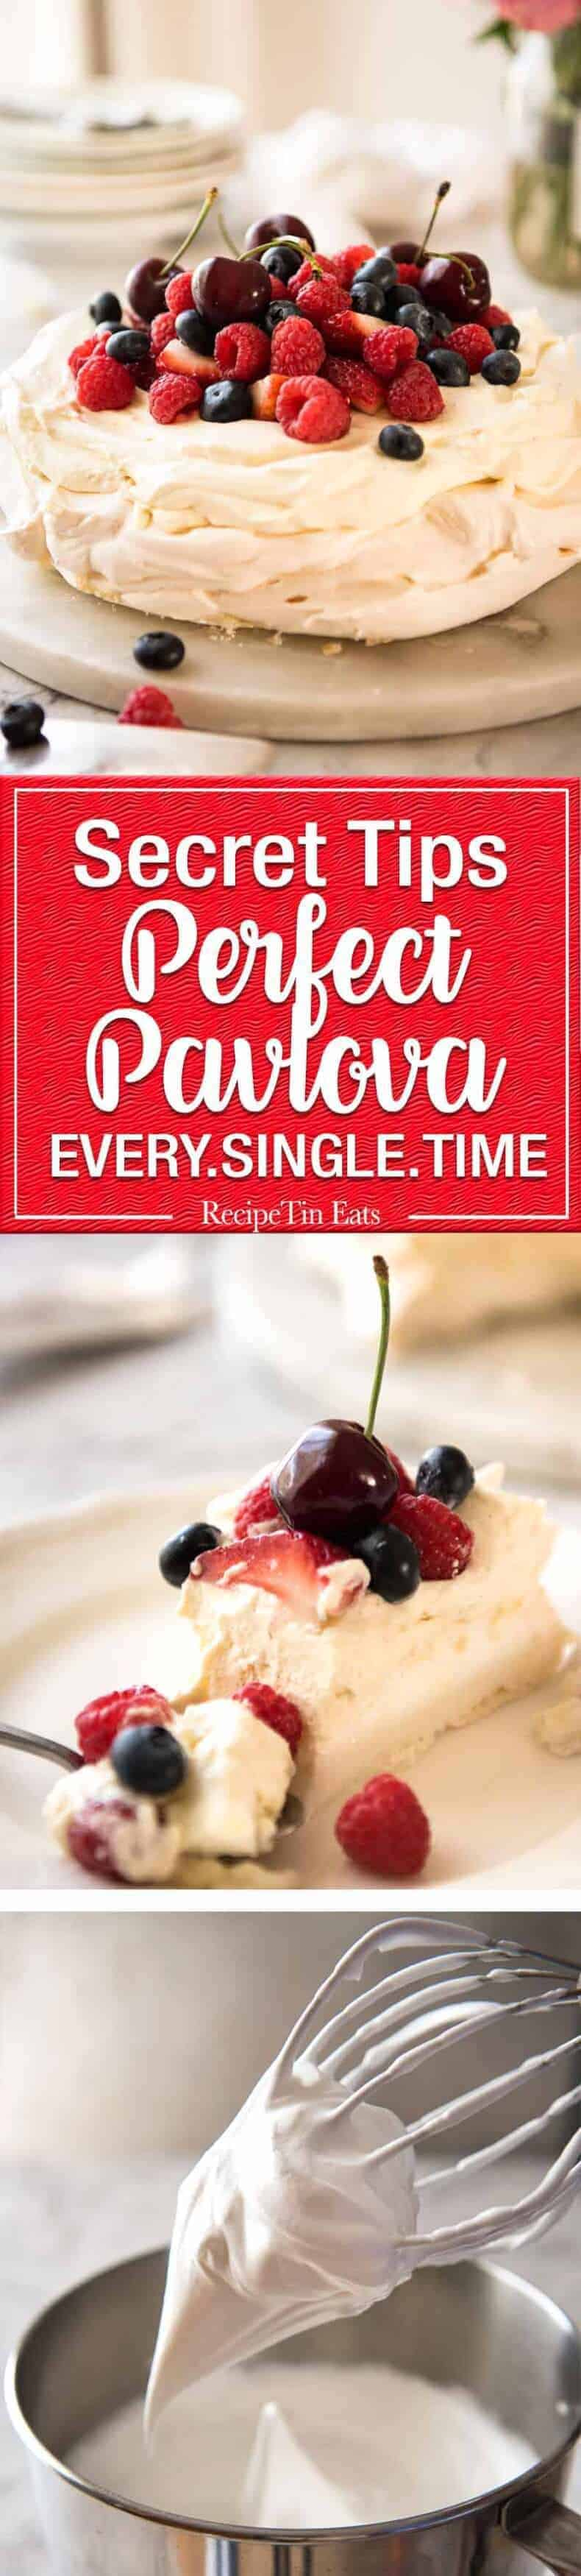 Classic Pavlova recipe with easy to follow tips that make all the difference for a perfect Pav, every time! recipetineats.com